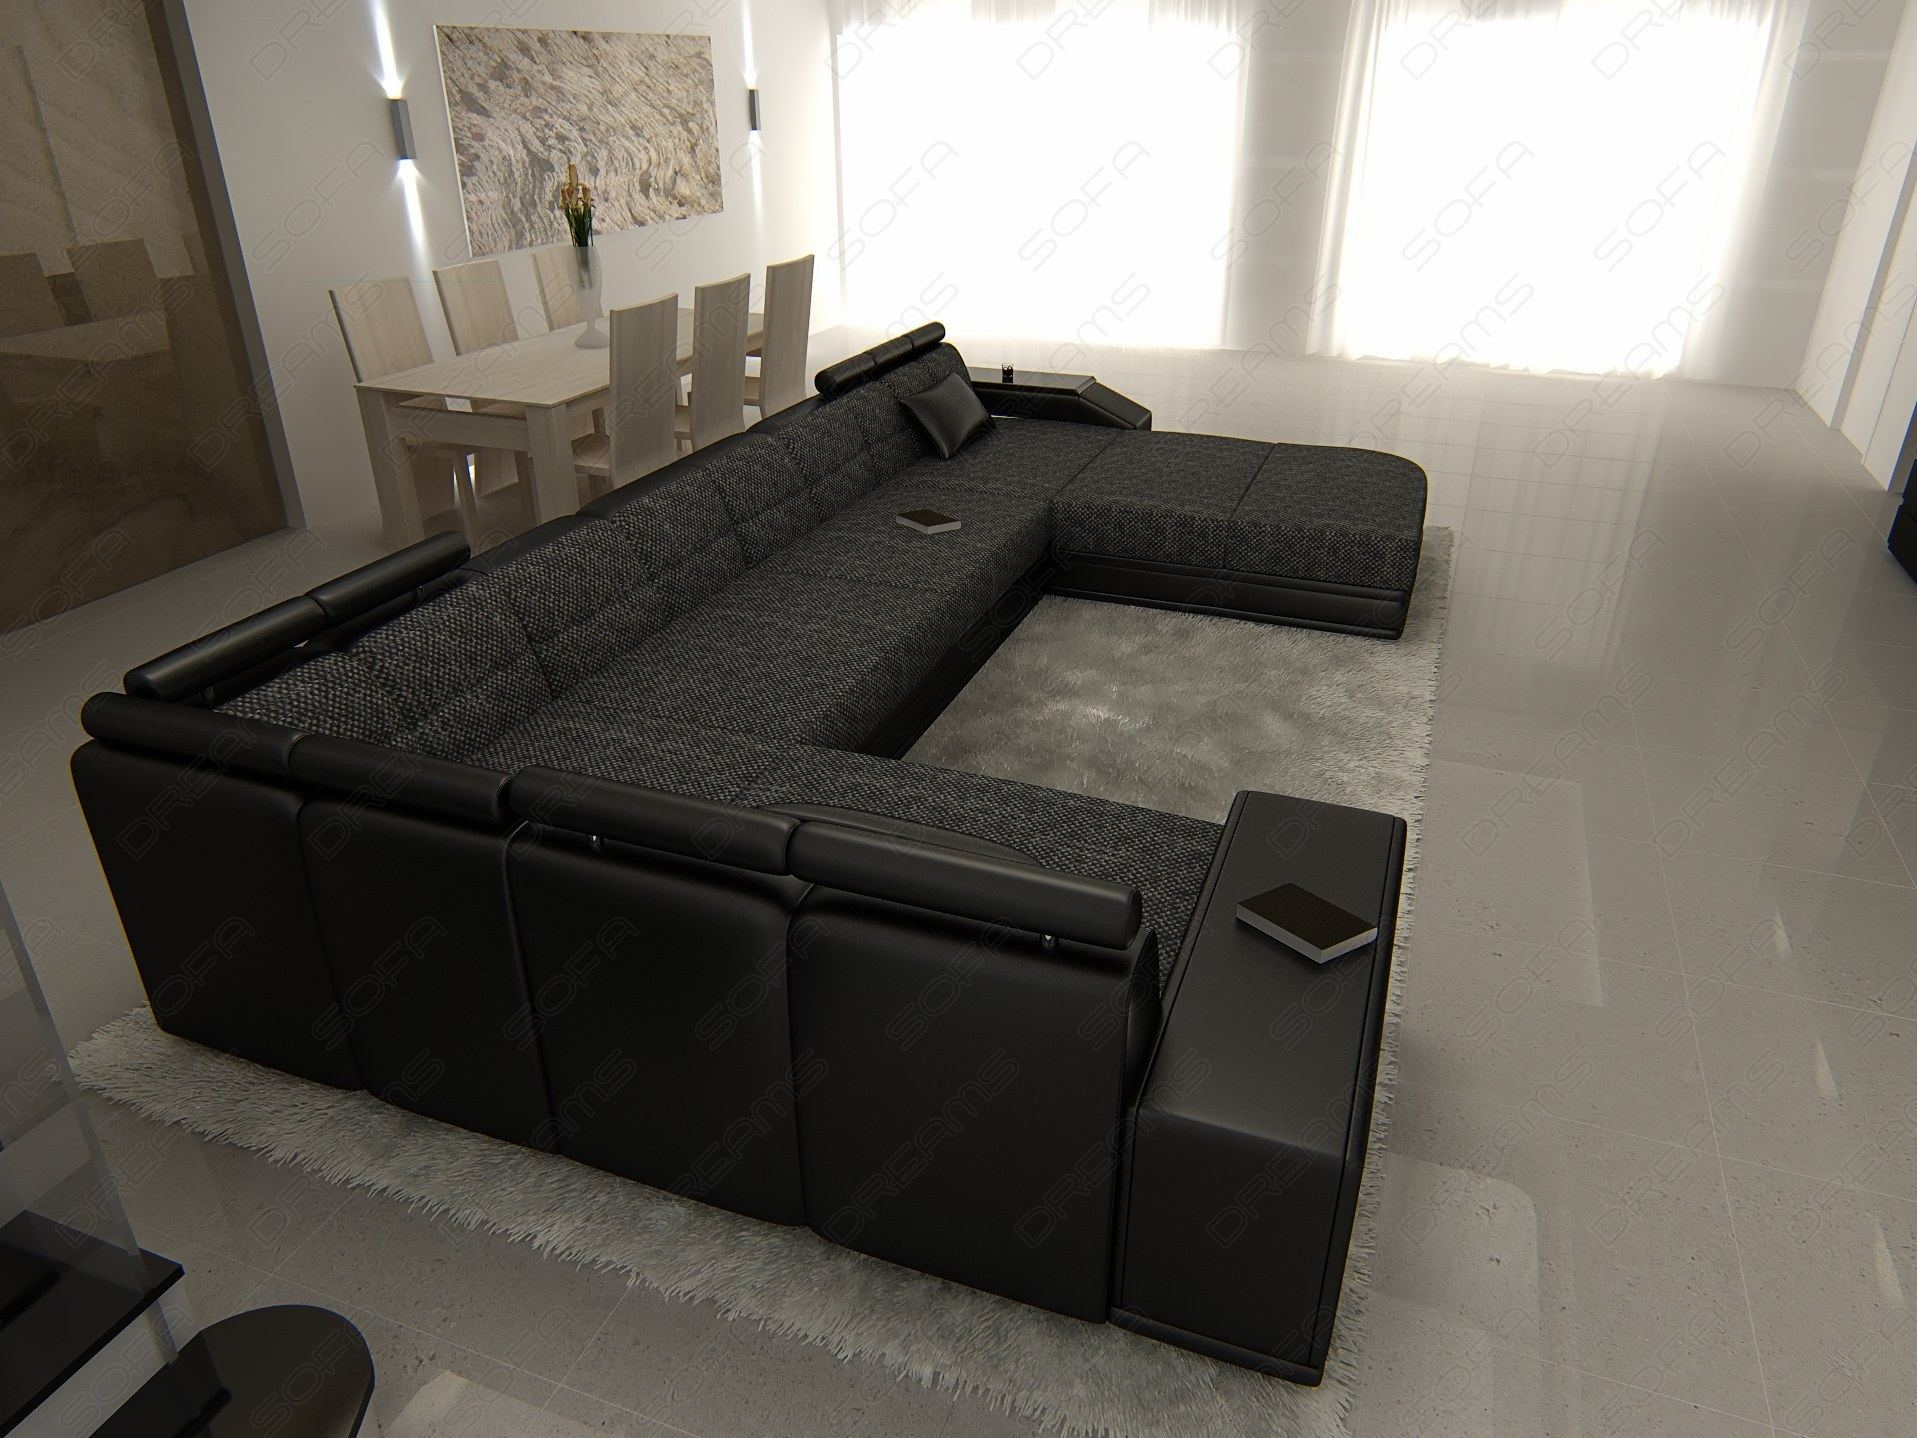 stoffsofa venedig polstersofa stoff wohnlandschaft dunkelgrau ebay. Black Bedroom Furniture Sets. Home Design Ideas